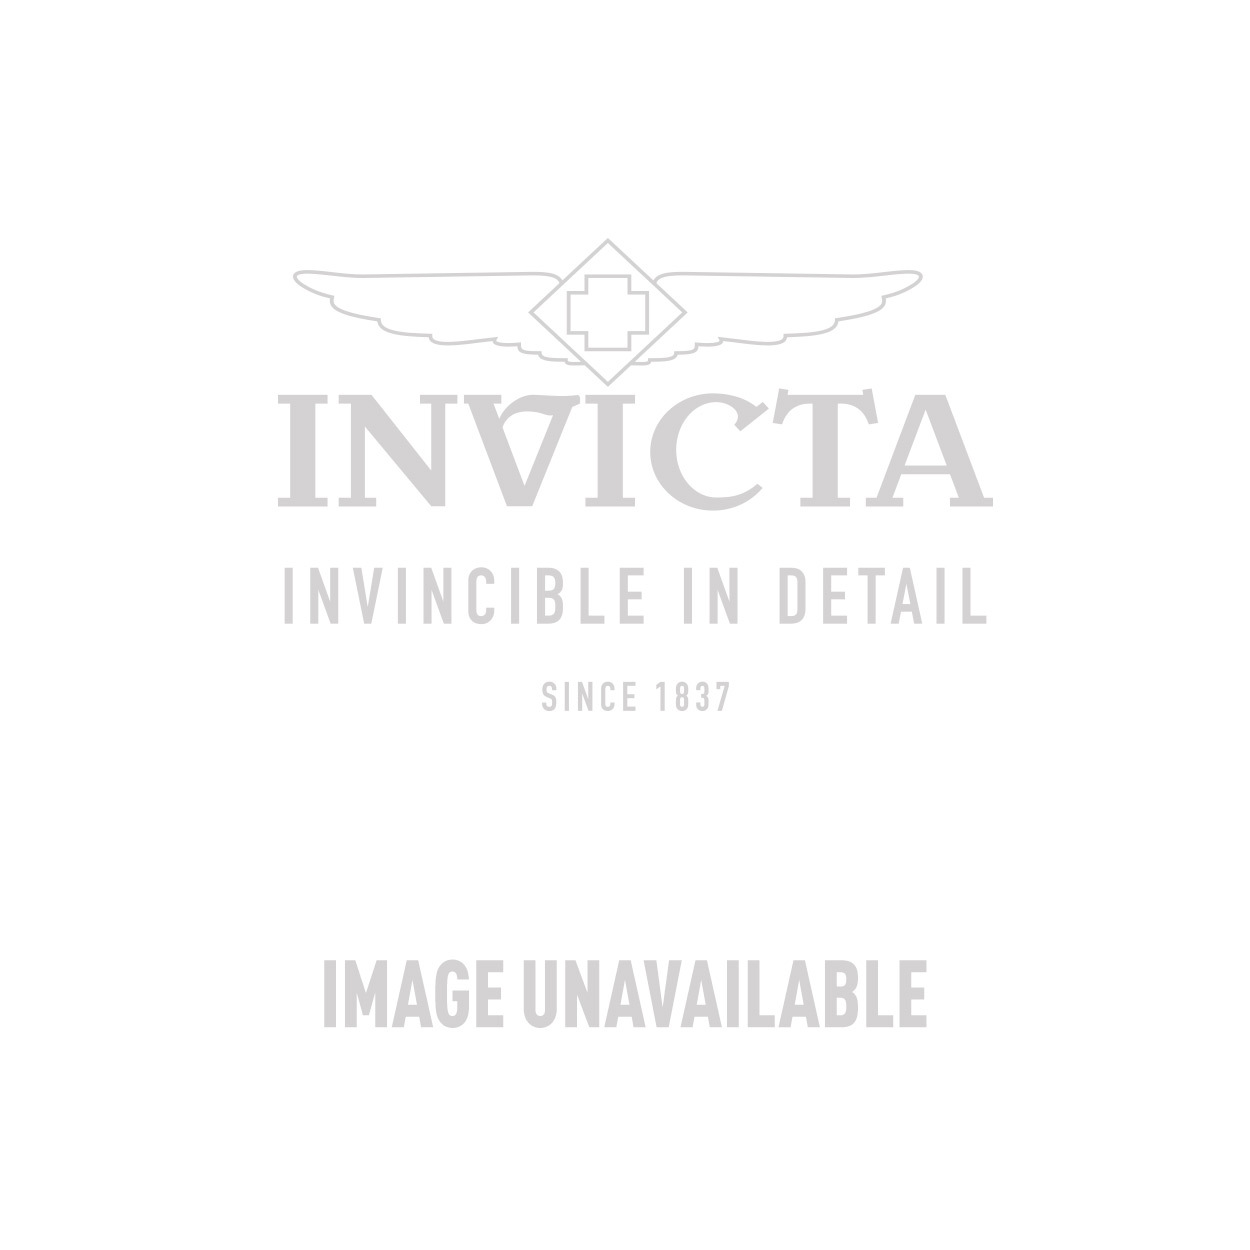 Invicta S1 Rally Quartz Watch - Stainless Steel case with Brown tone Leather band - Model 16010